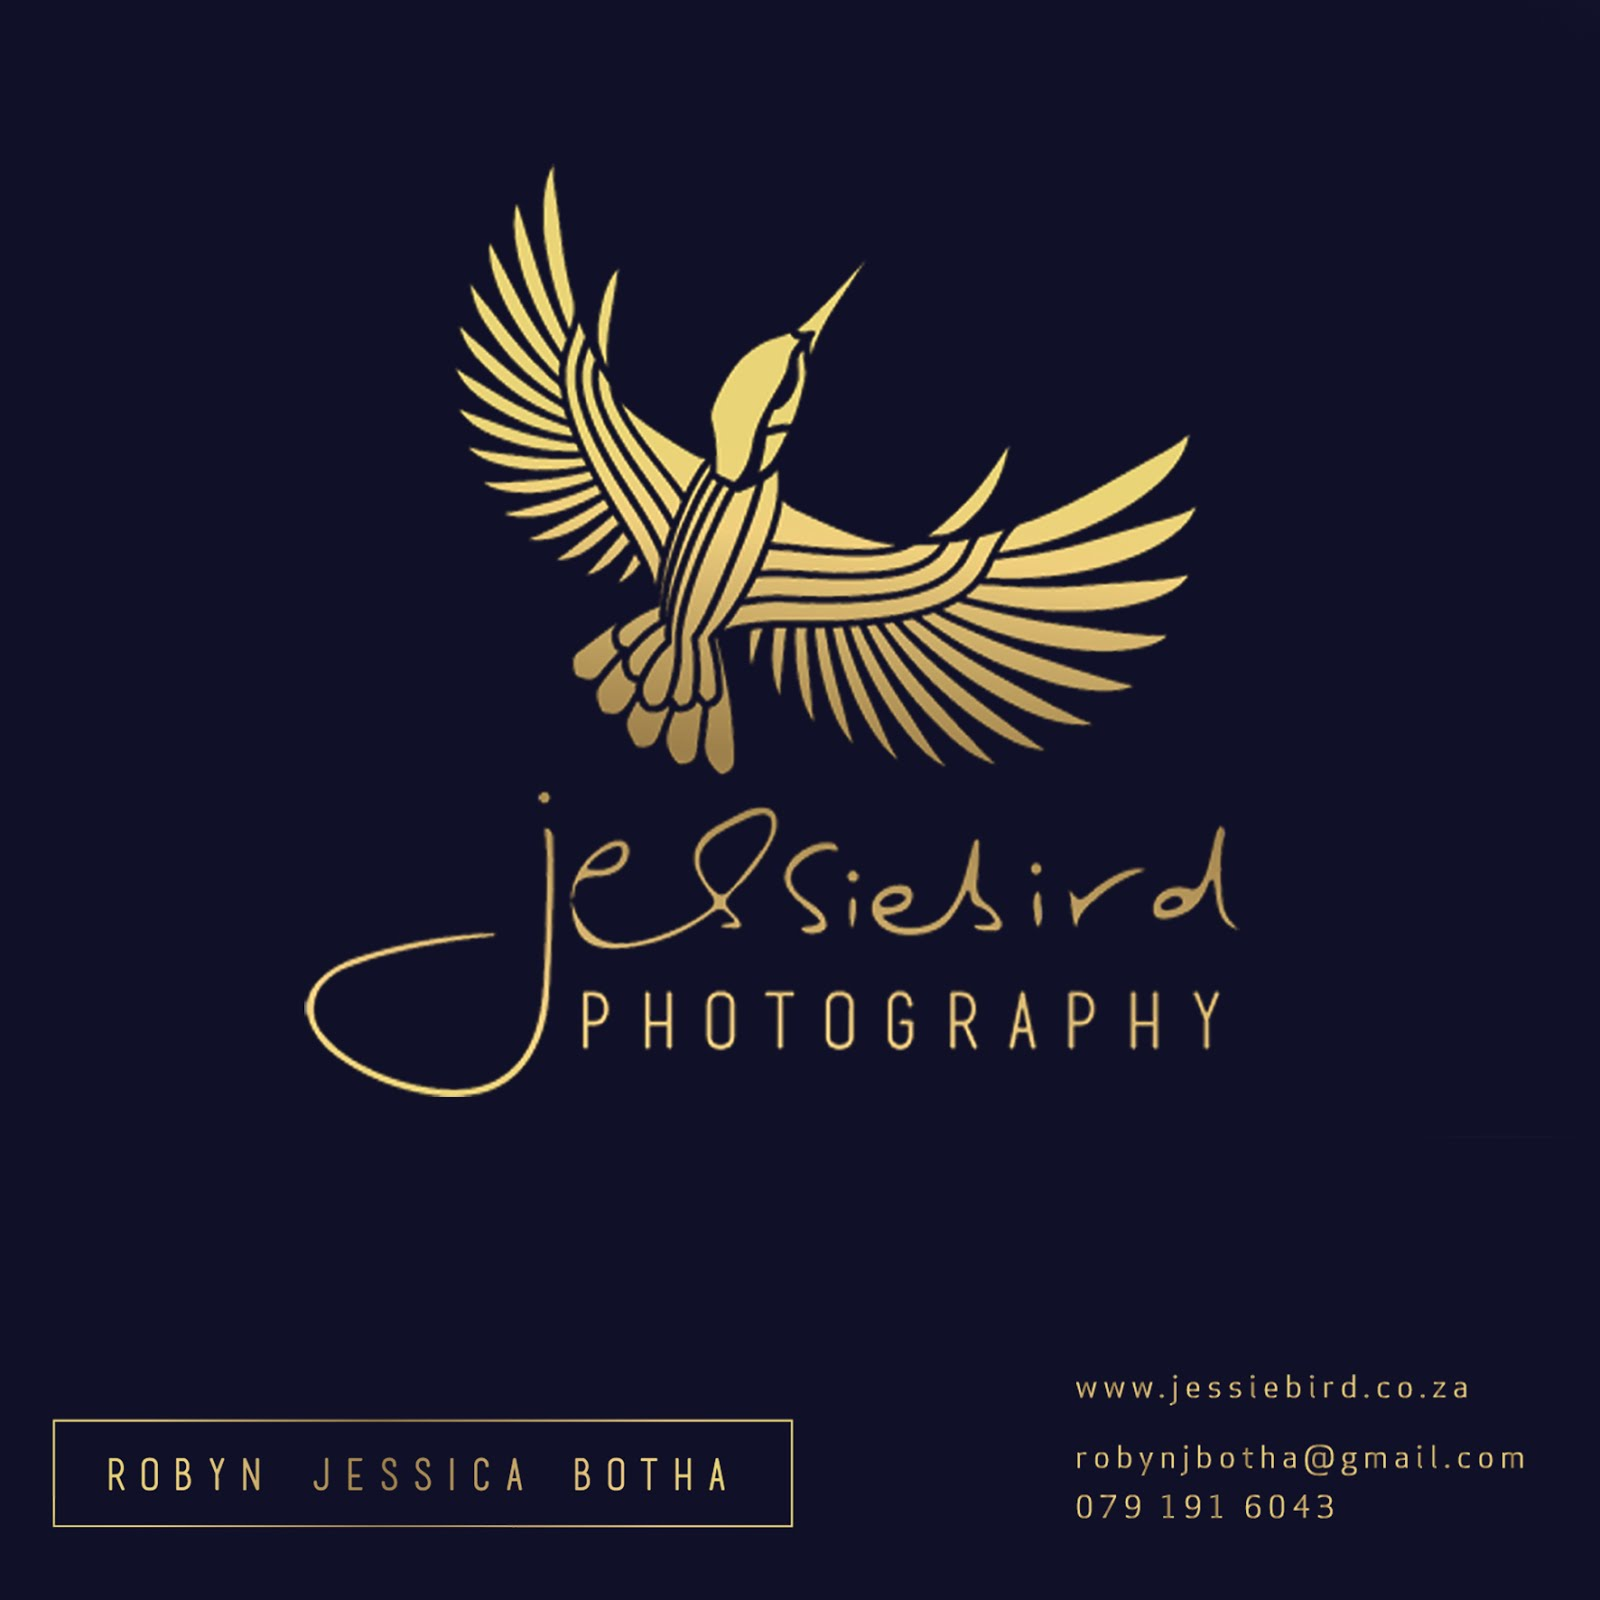 Visit my photography partner's website!